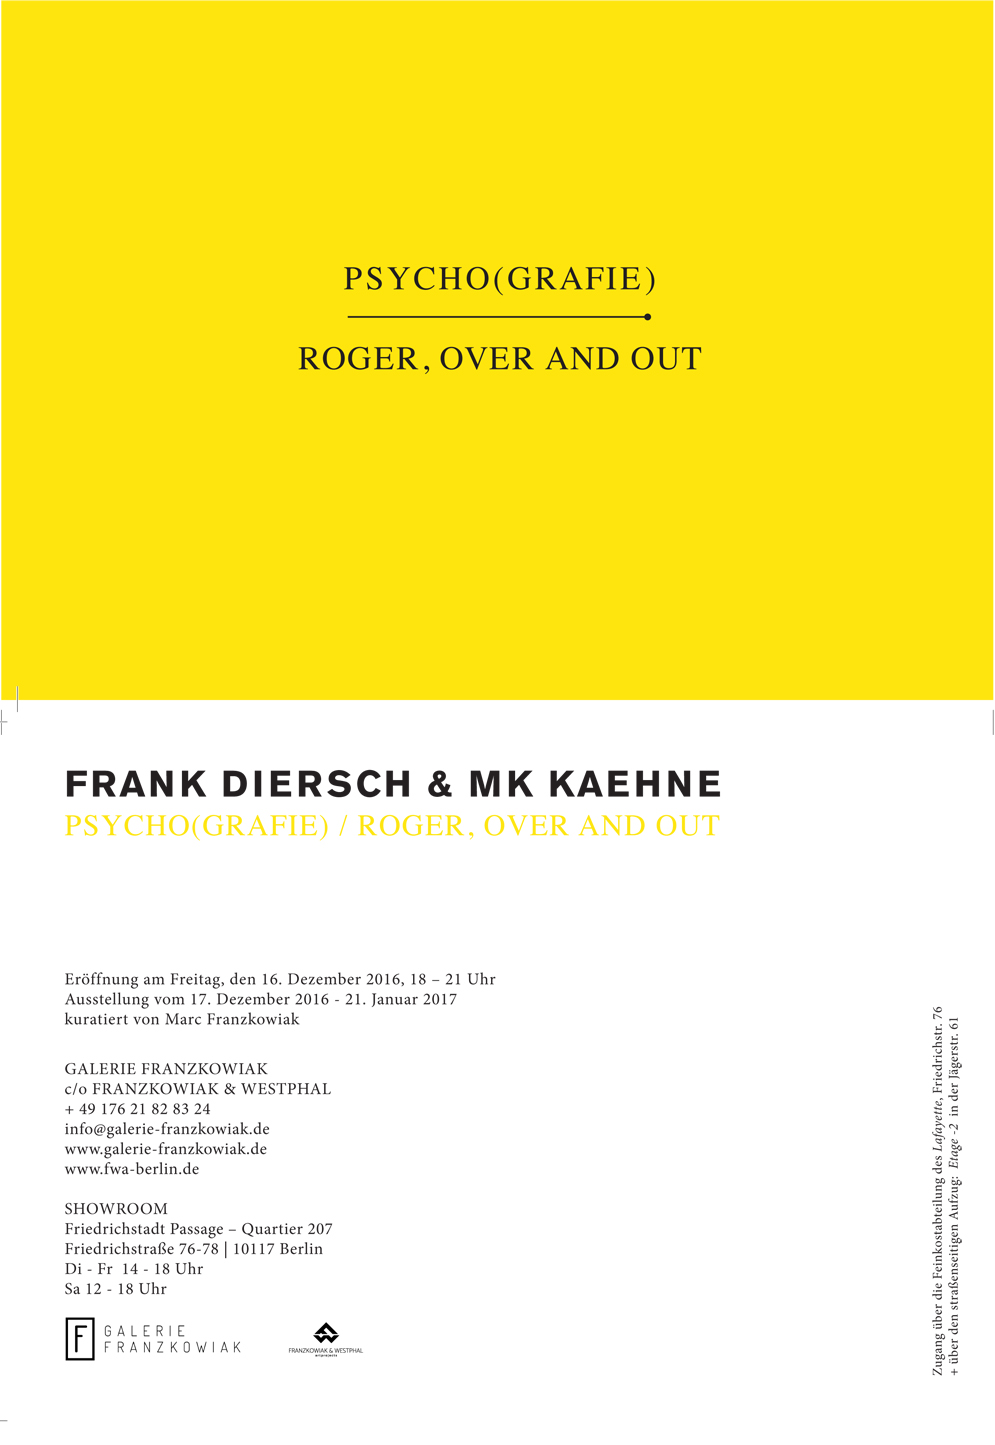 EINLADUNGSKARTE: FRANK DIERSCH & MK KAEHNE PSYCHO(GRAFIE) ROGER, OVER AND OUT.